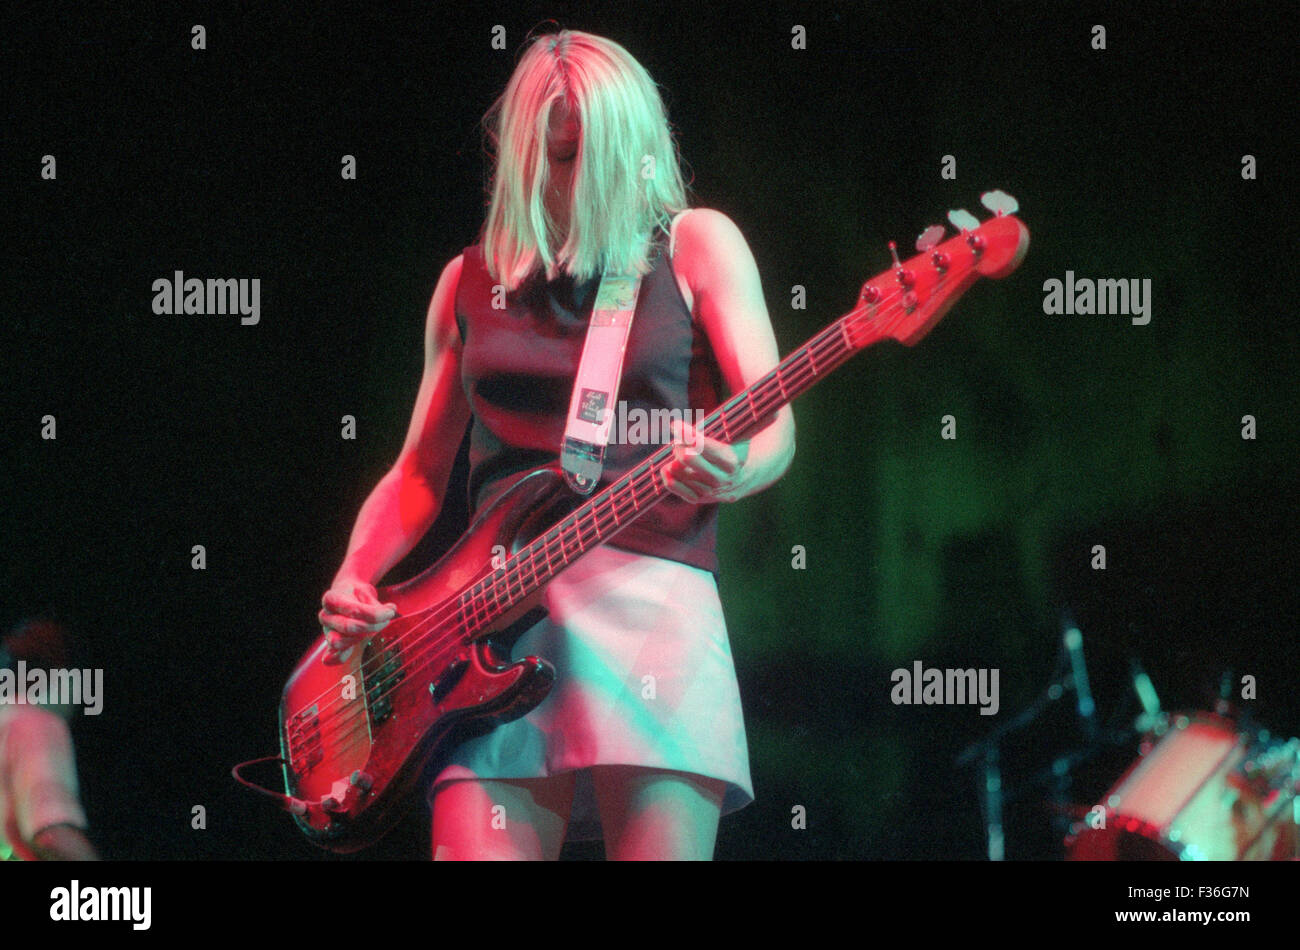 Kim Gordon, of Sonic Youth, performs during the 1995 Lollapalooza concert at Deer Creek Music Center in Noblesville, - Stock Image